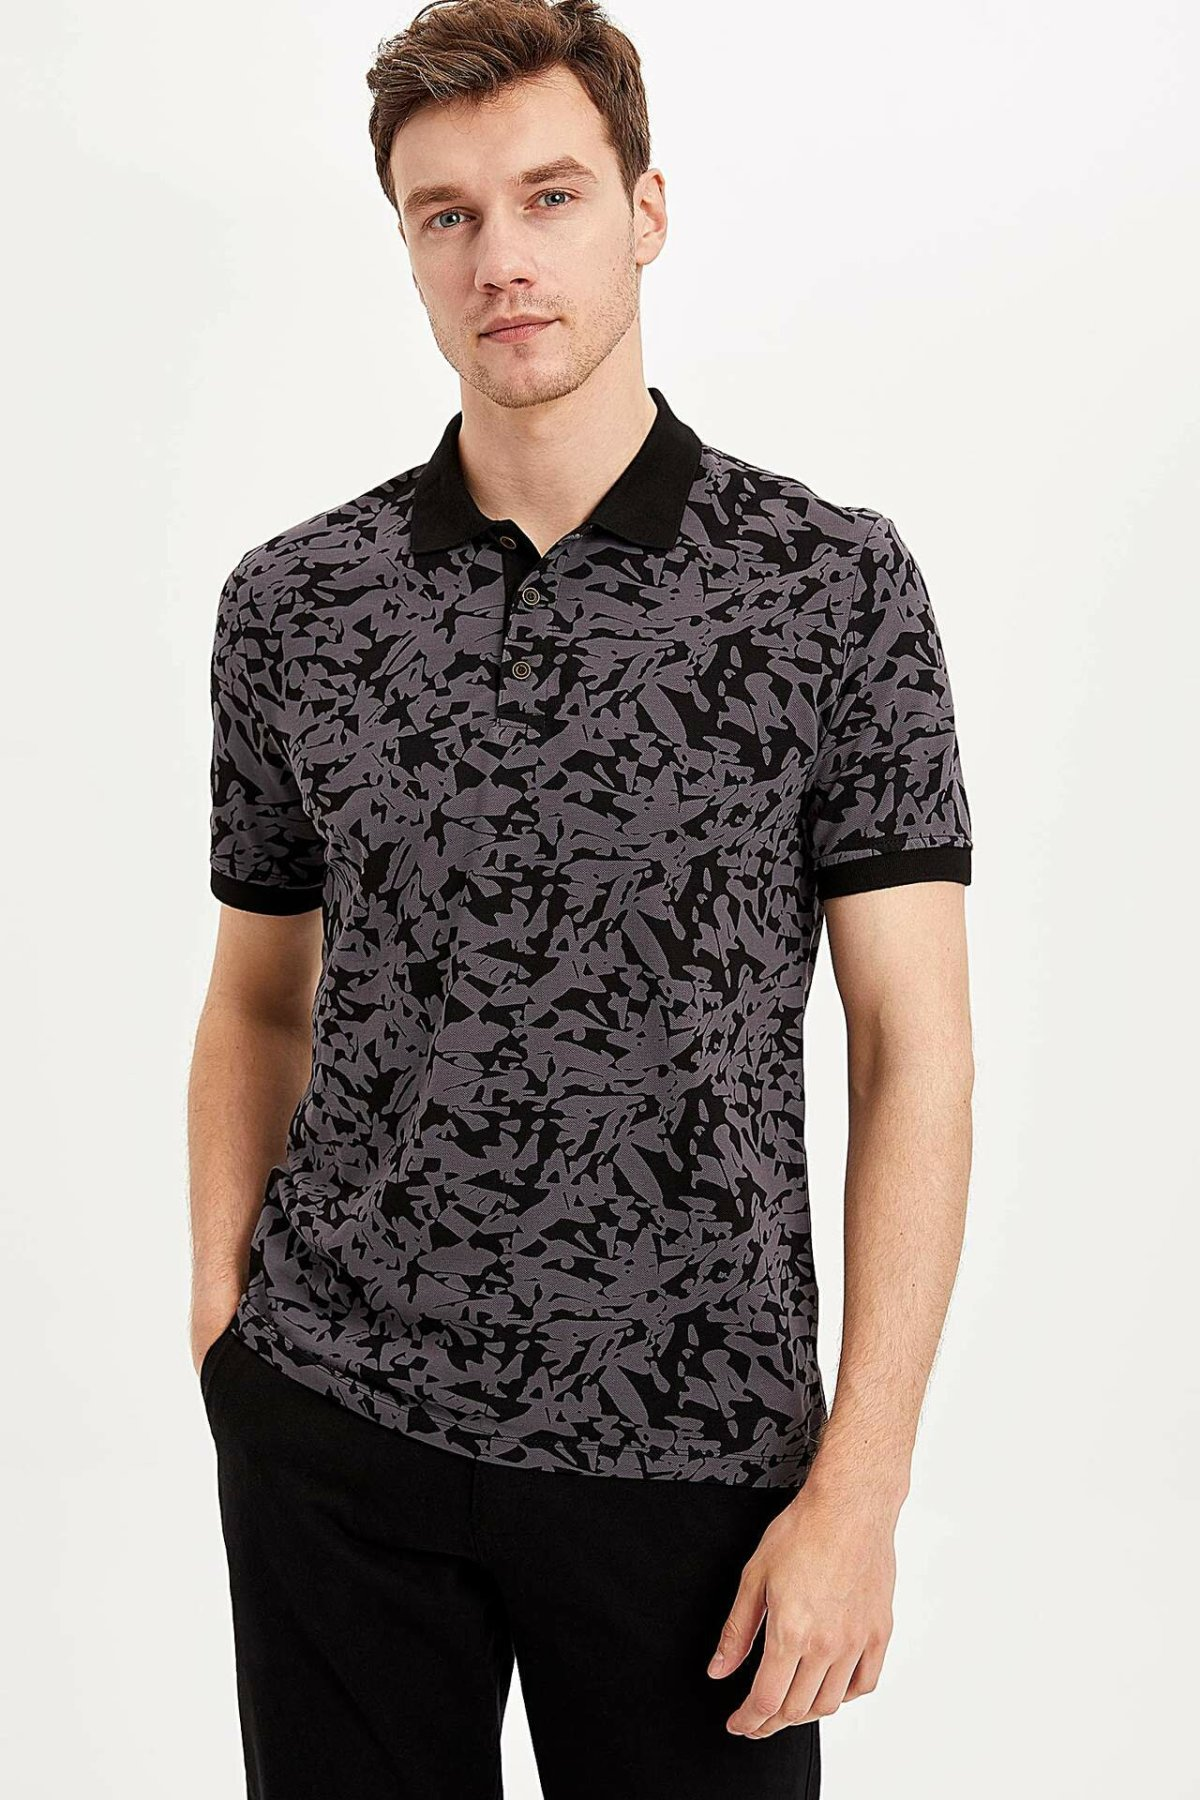 DeFacto Man Fashion Polo Shirt For Men's Casual Print Pattern Loose Short Sleeves Male Comfort Tops Summer New - K4619AZ19SM